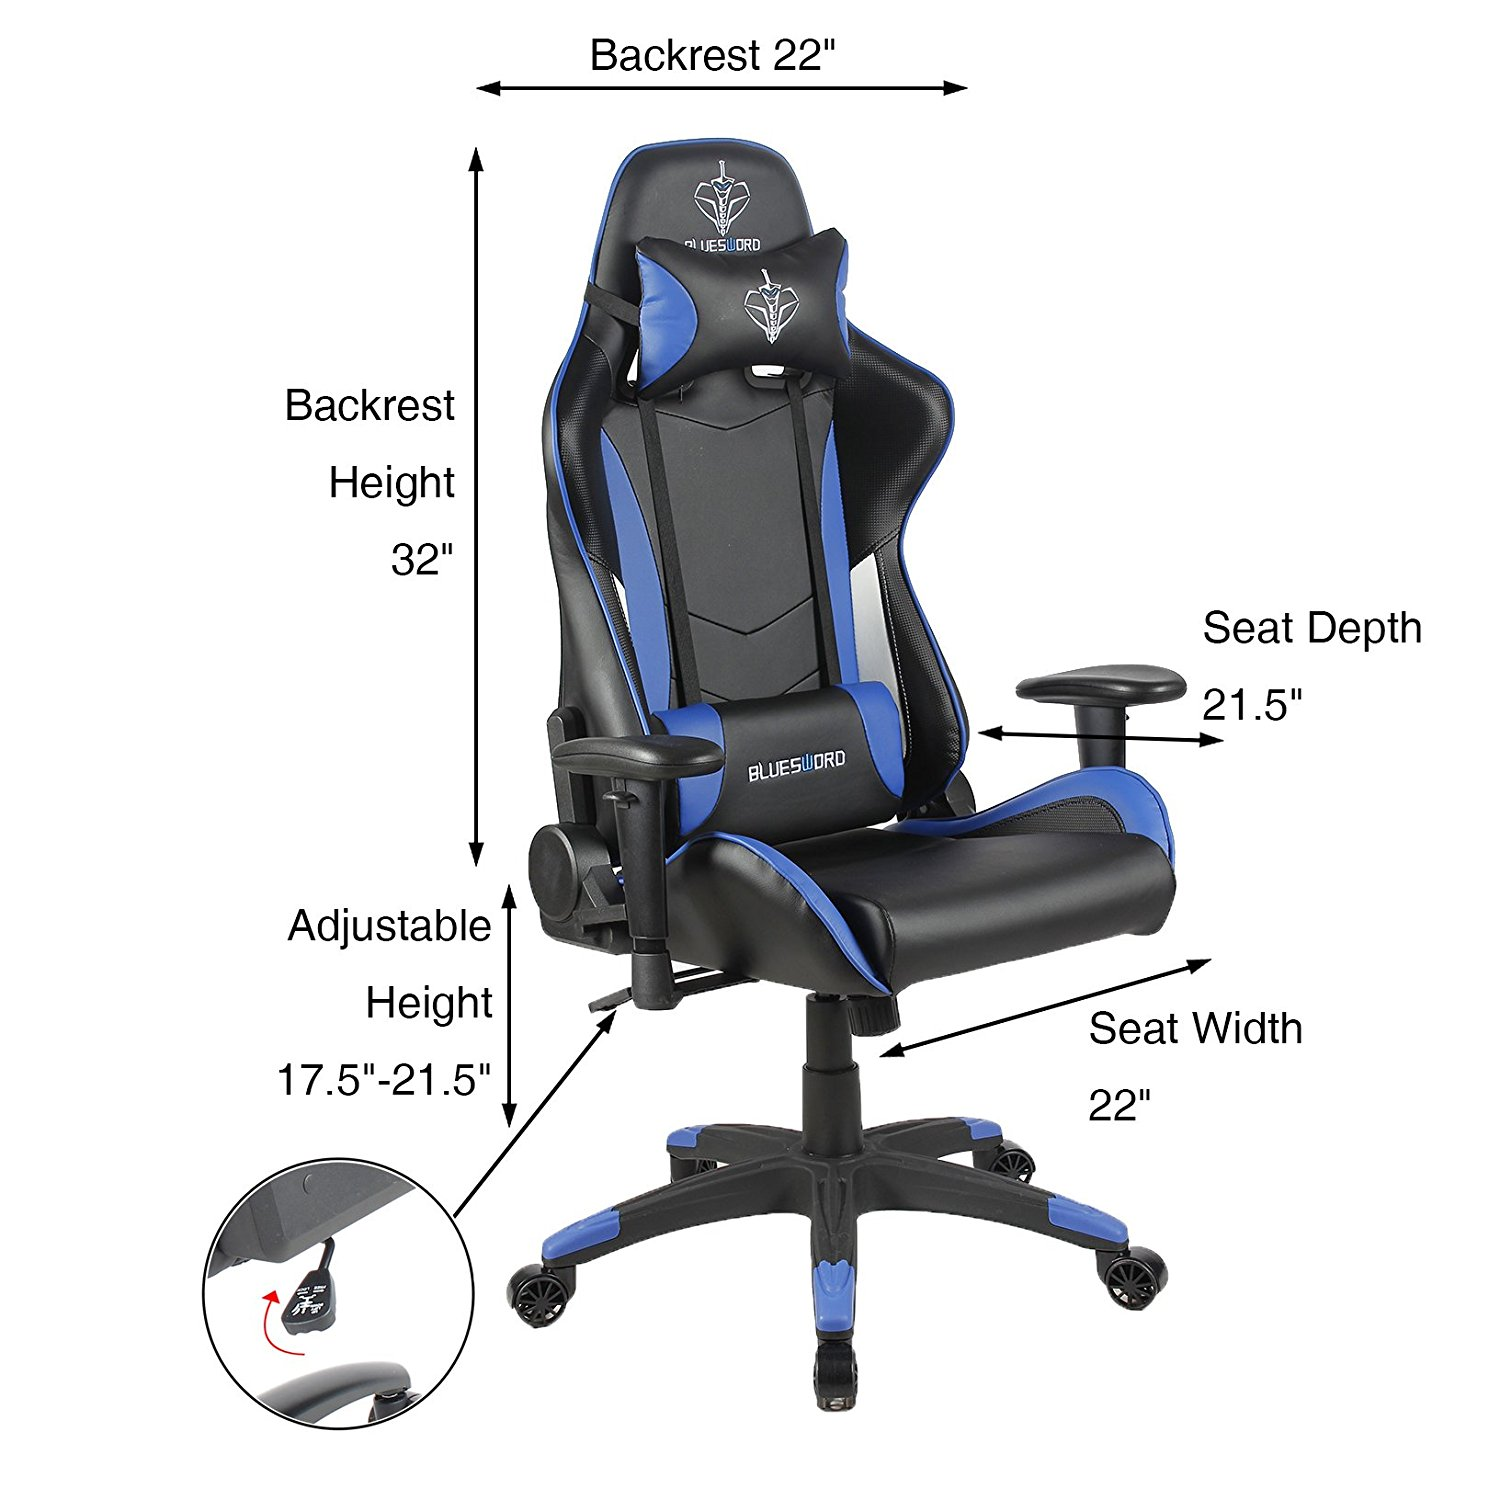 Fine Blue Sword Carbon Fiber Gaming Chair Large Size Racing Style High Back Adjustment Office Chair With Lumbar Support And Headrest Whiteblue Theyellowbook Wood Chair Design Ideas Theyellowbookinfo